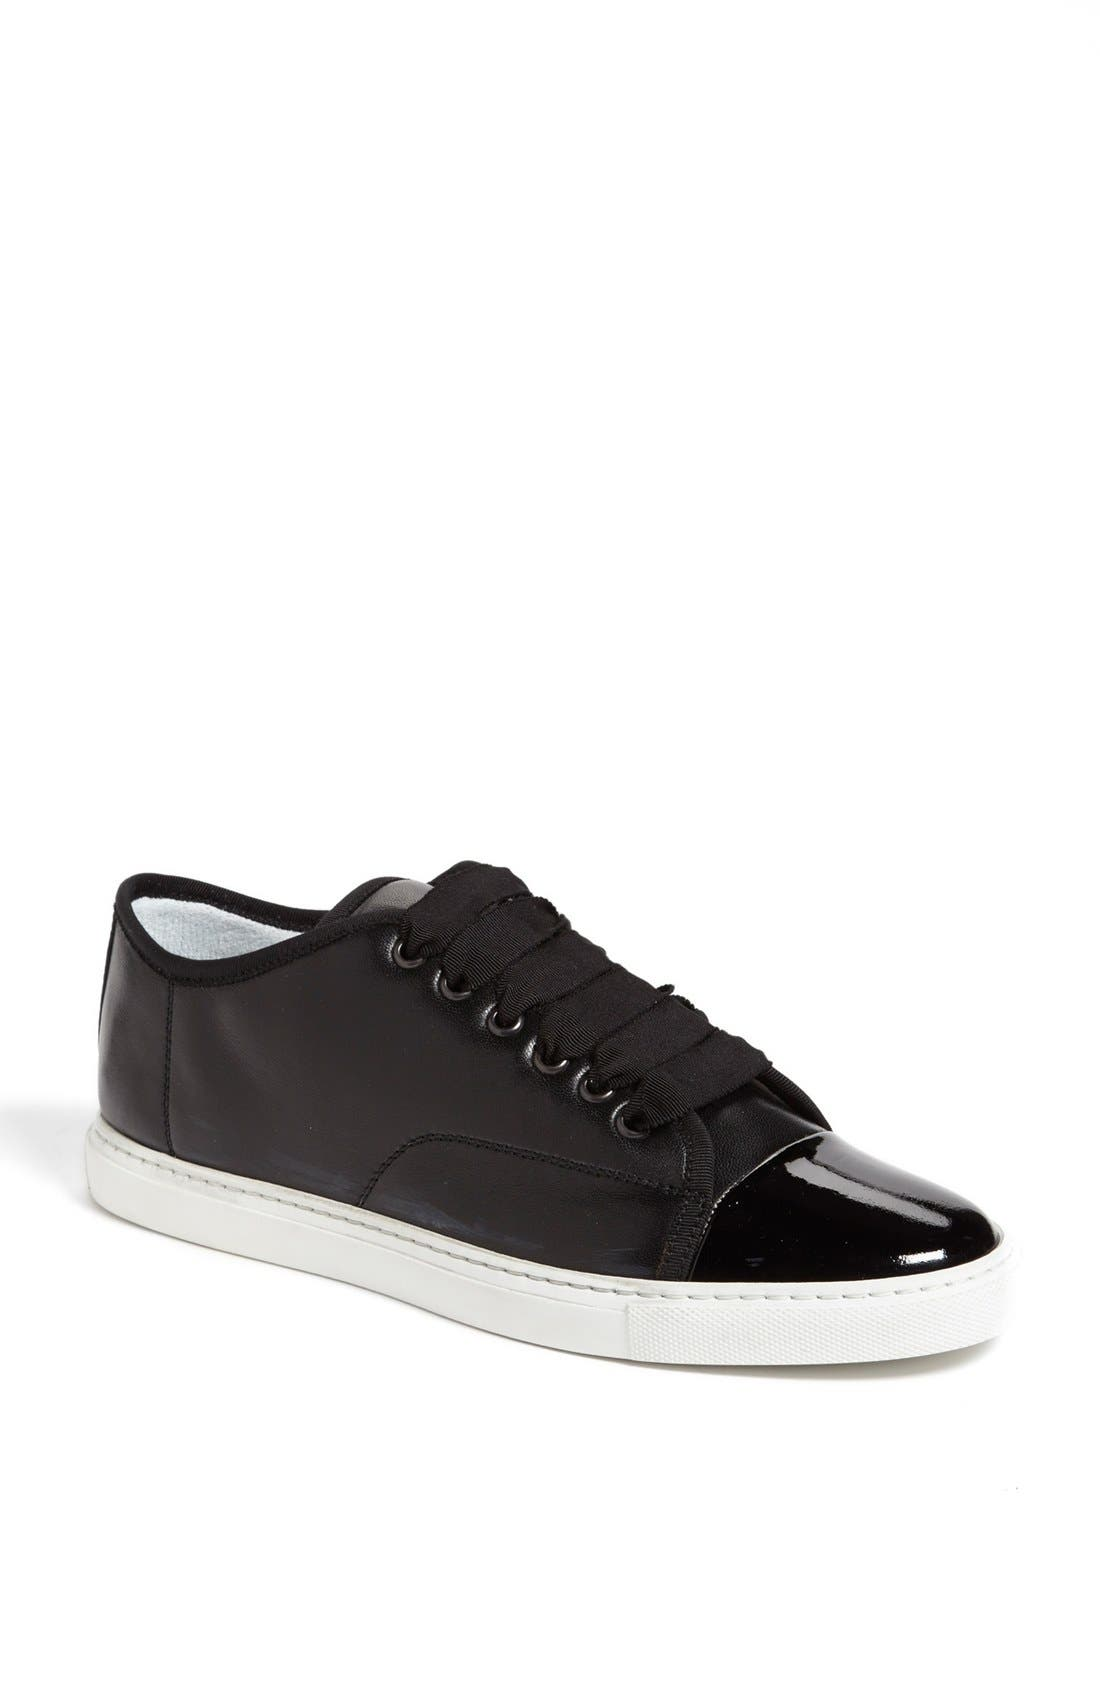 Alternate Image 1 Selected - Lanvin Leather Low Top Sneaker